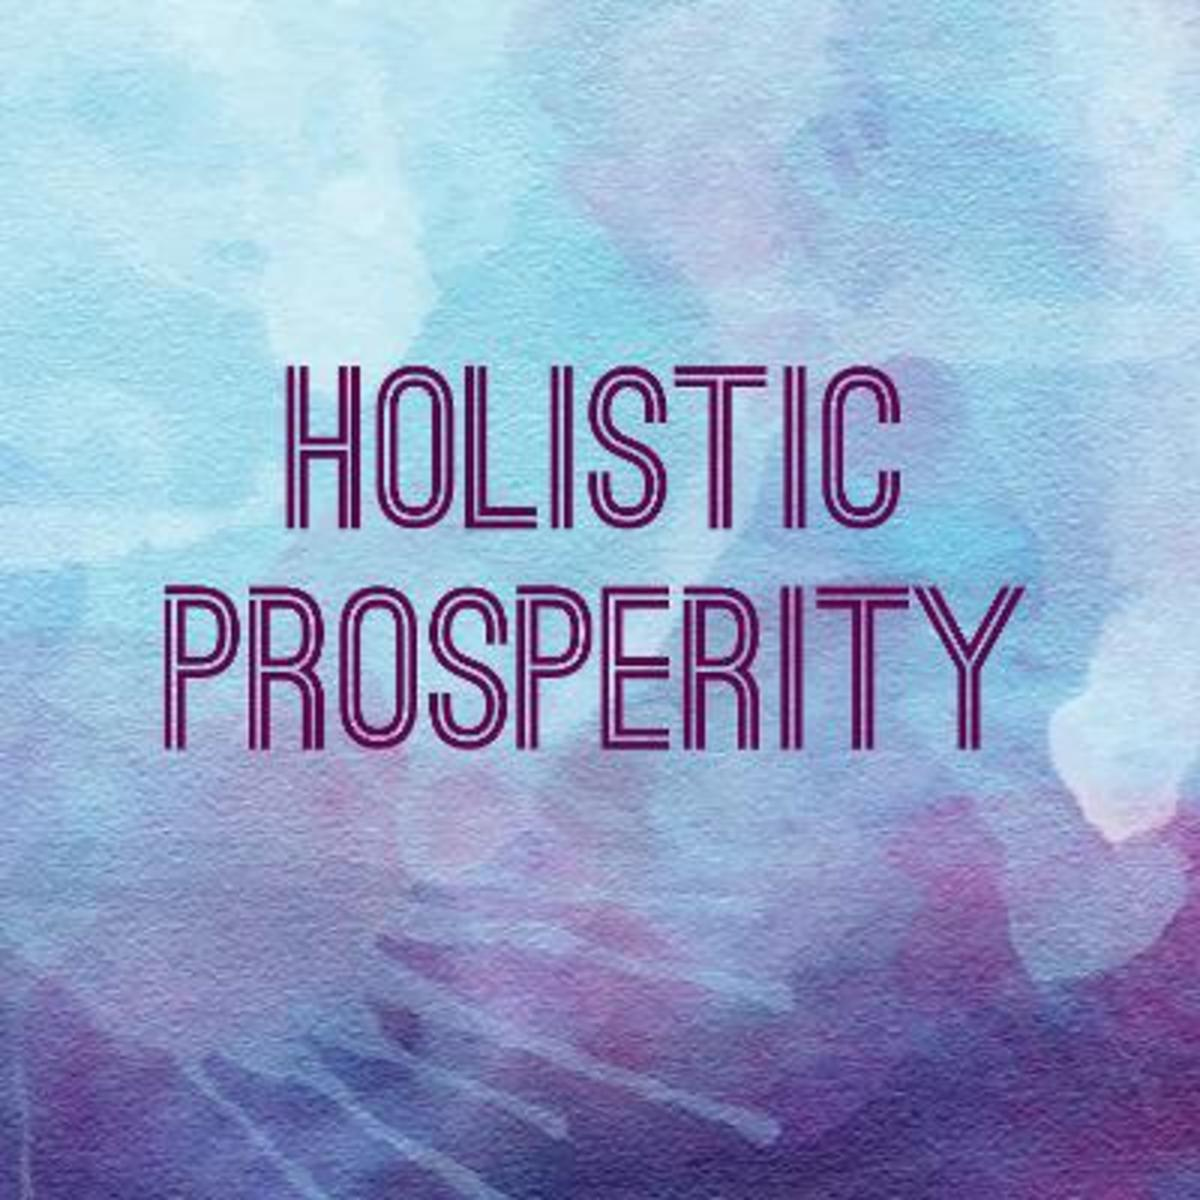 Holistic Prosperity: What It Is and What It's Not